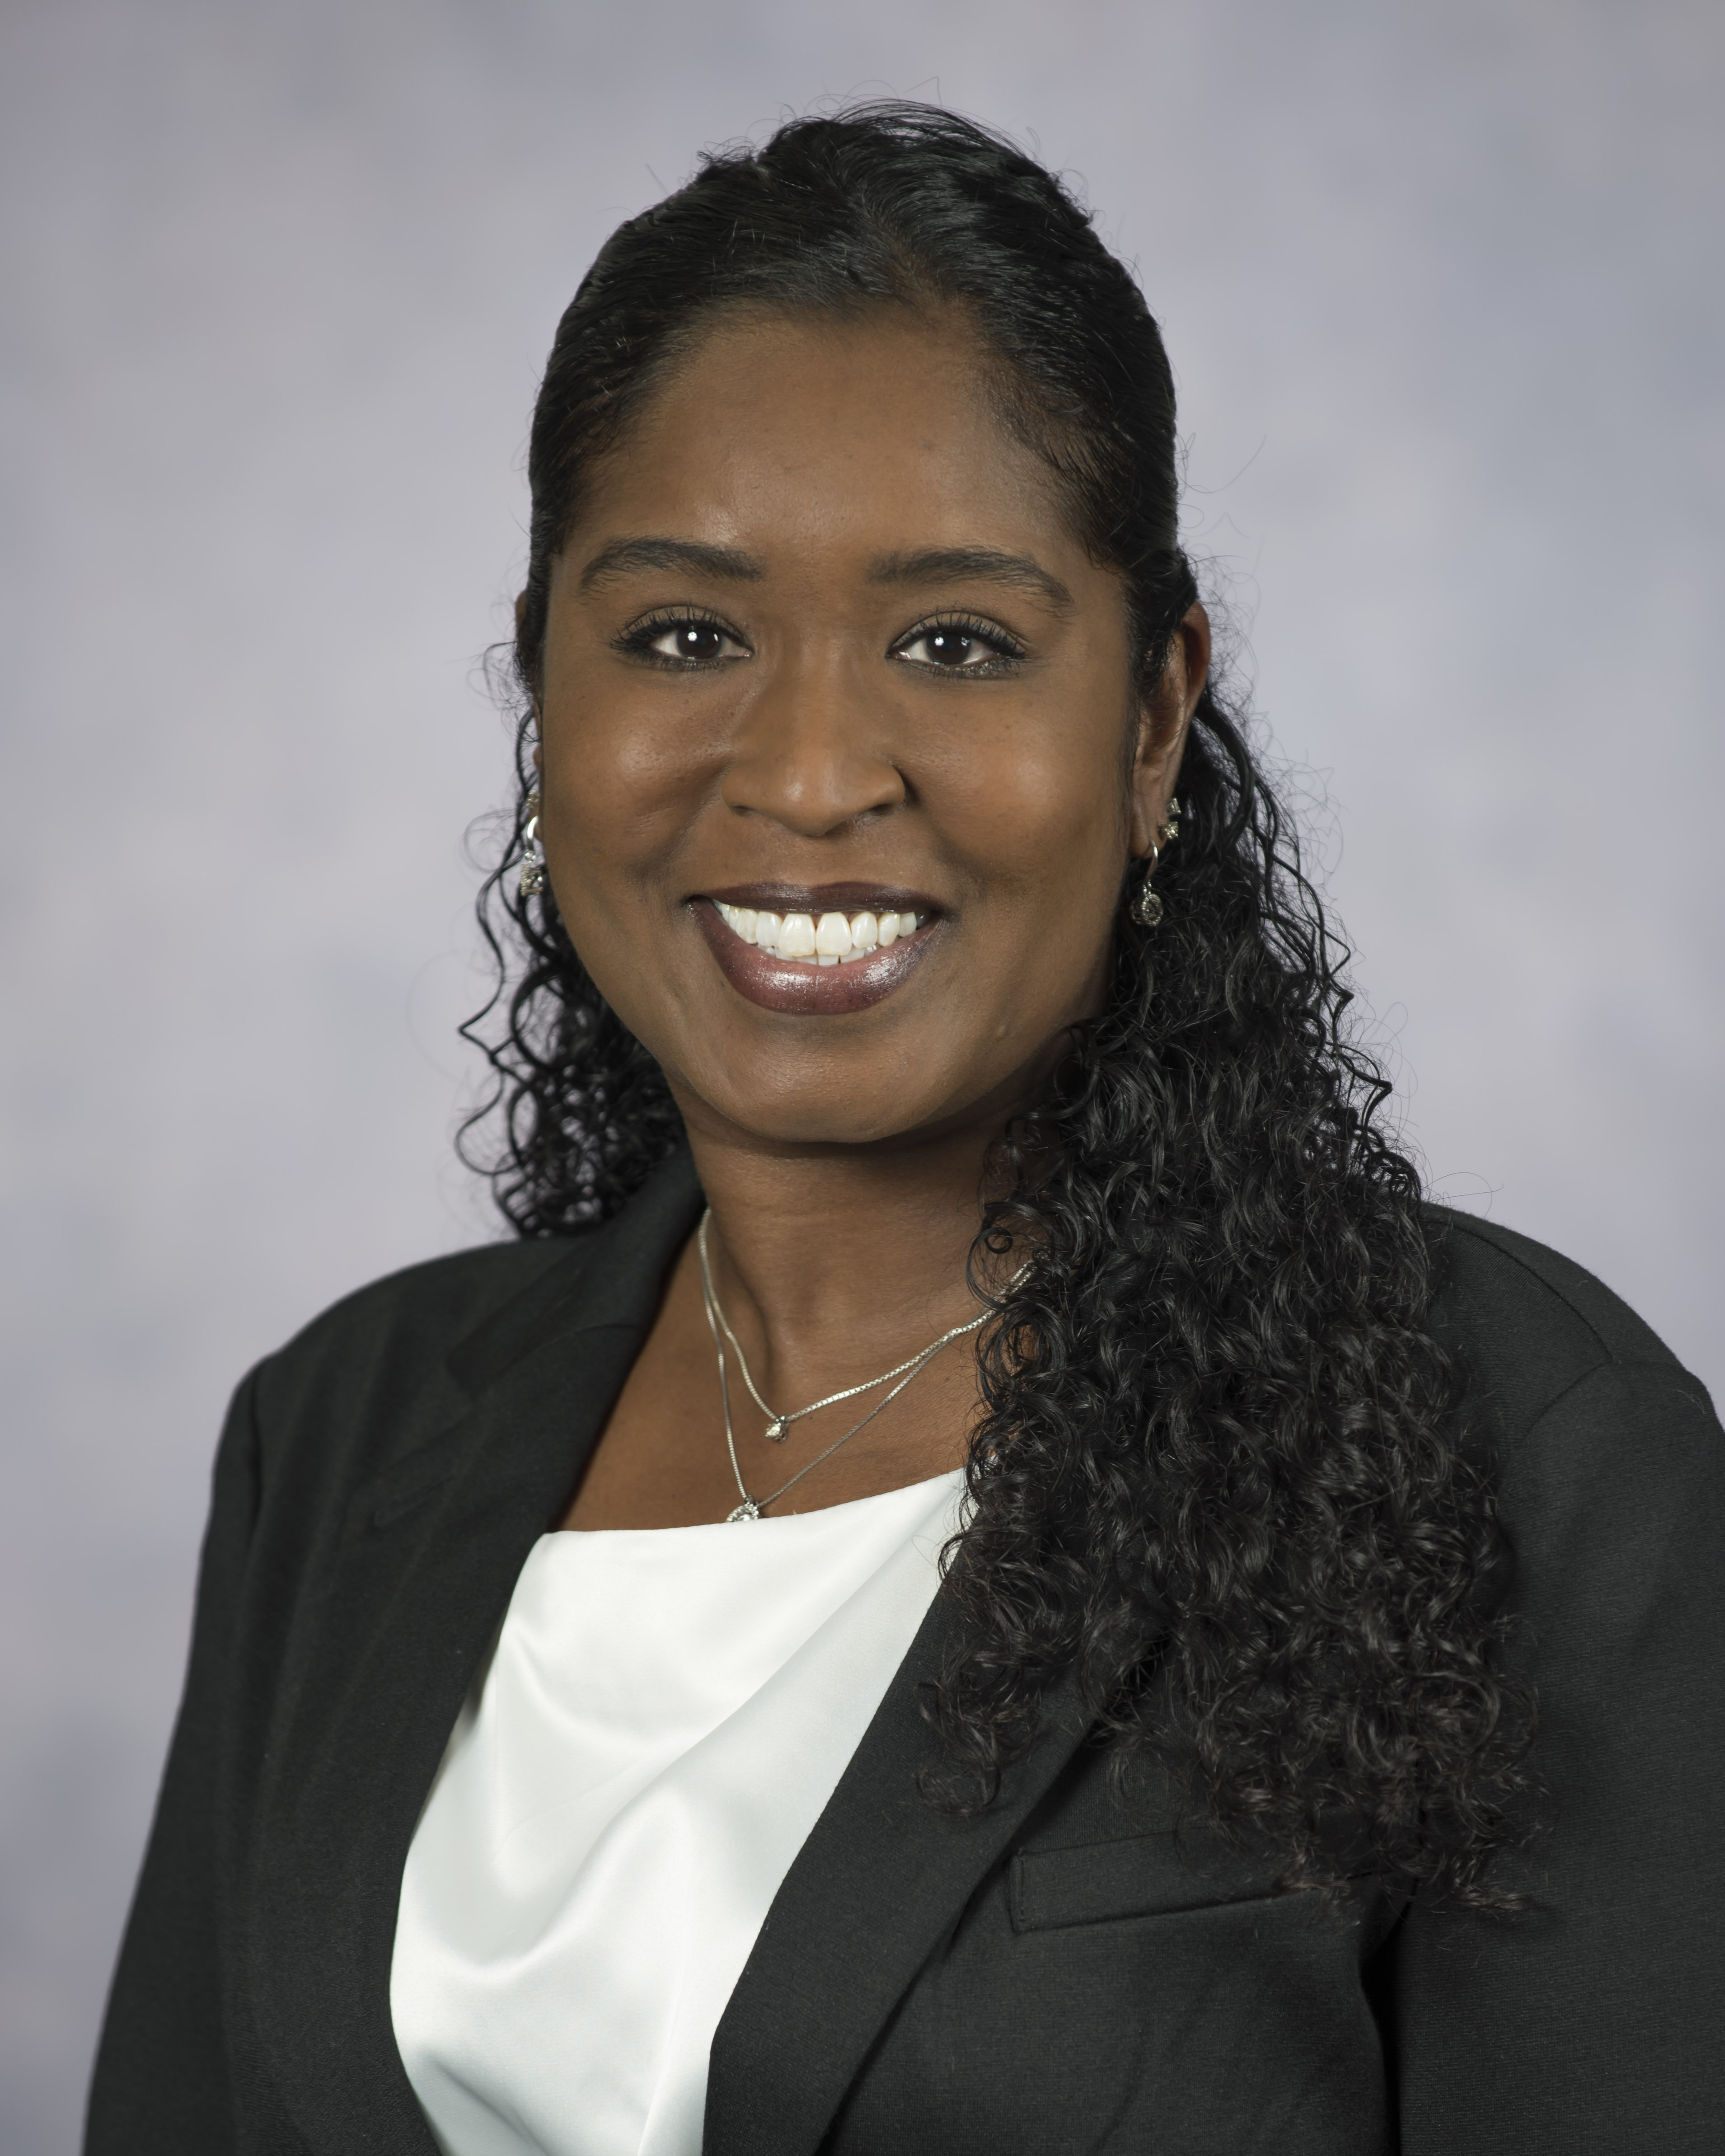 Tampa General Hospital Health Educator Tamika Powe